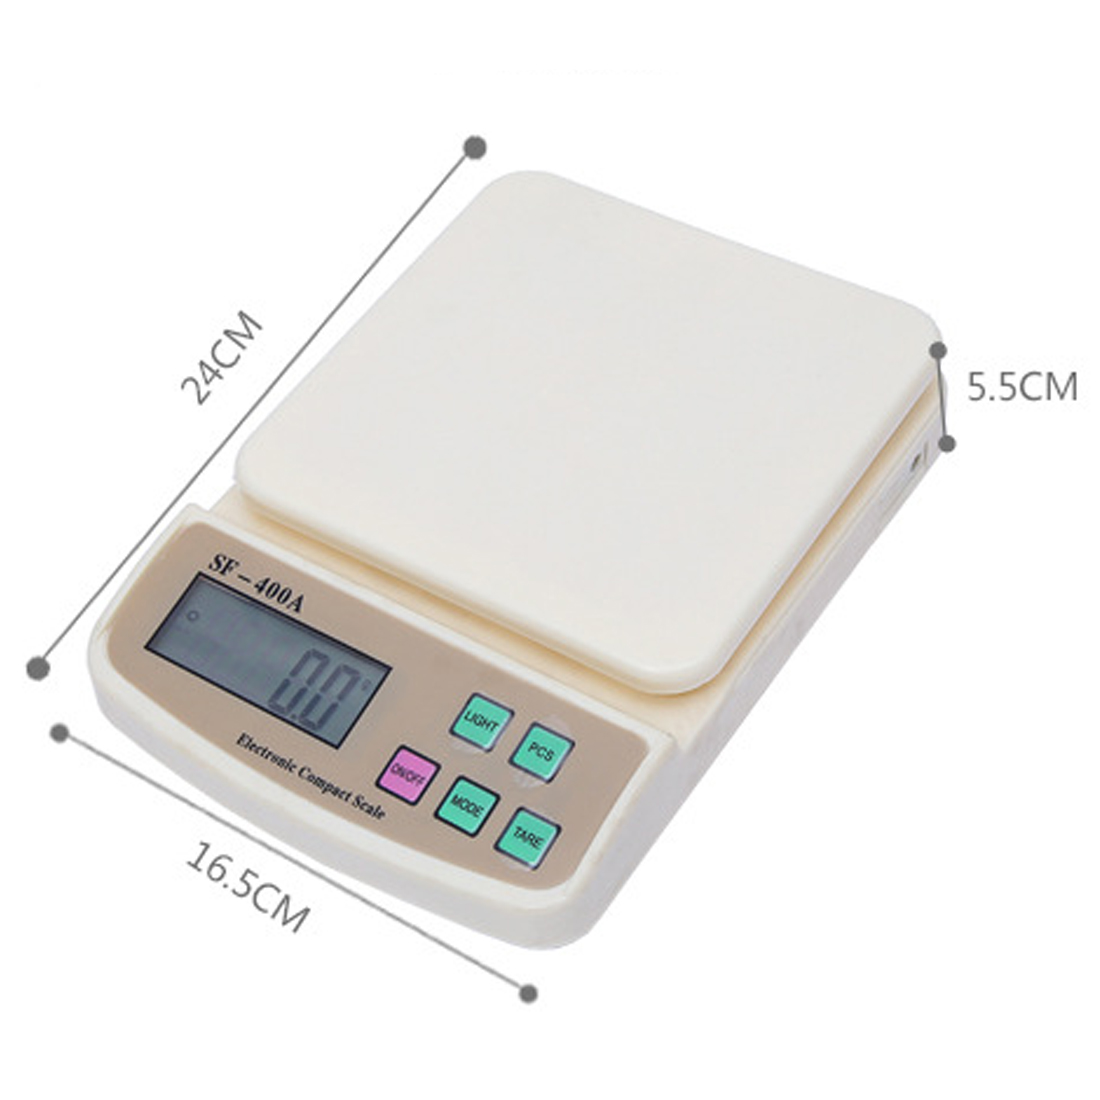 10Kg/1g Kitchen Weighing Scale LCD Display Backlight Scales kitchen foods Scale Mini Digital Electronic scales Pocket